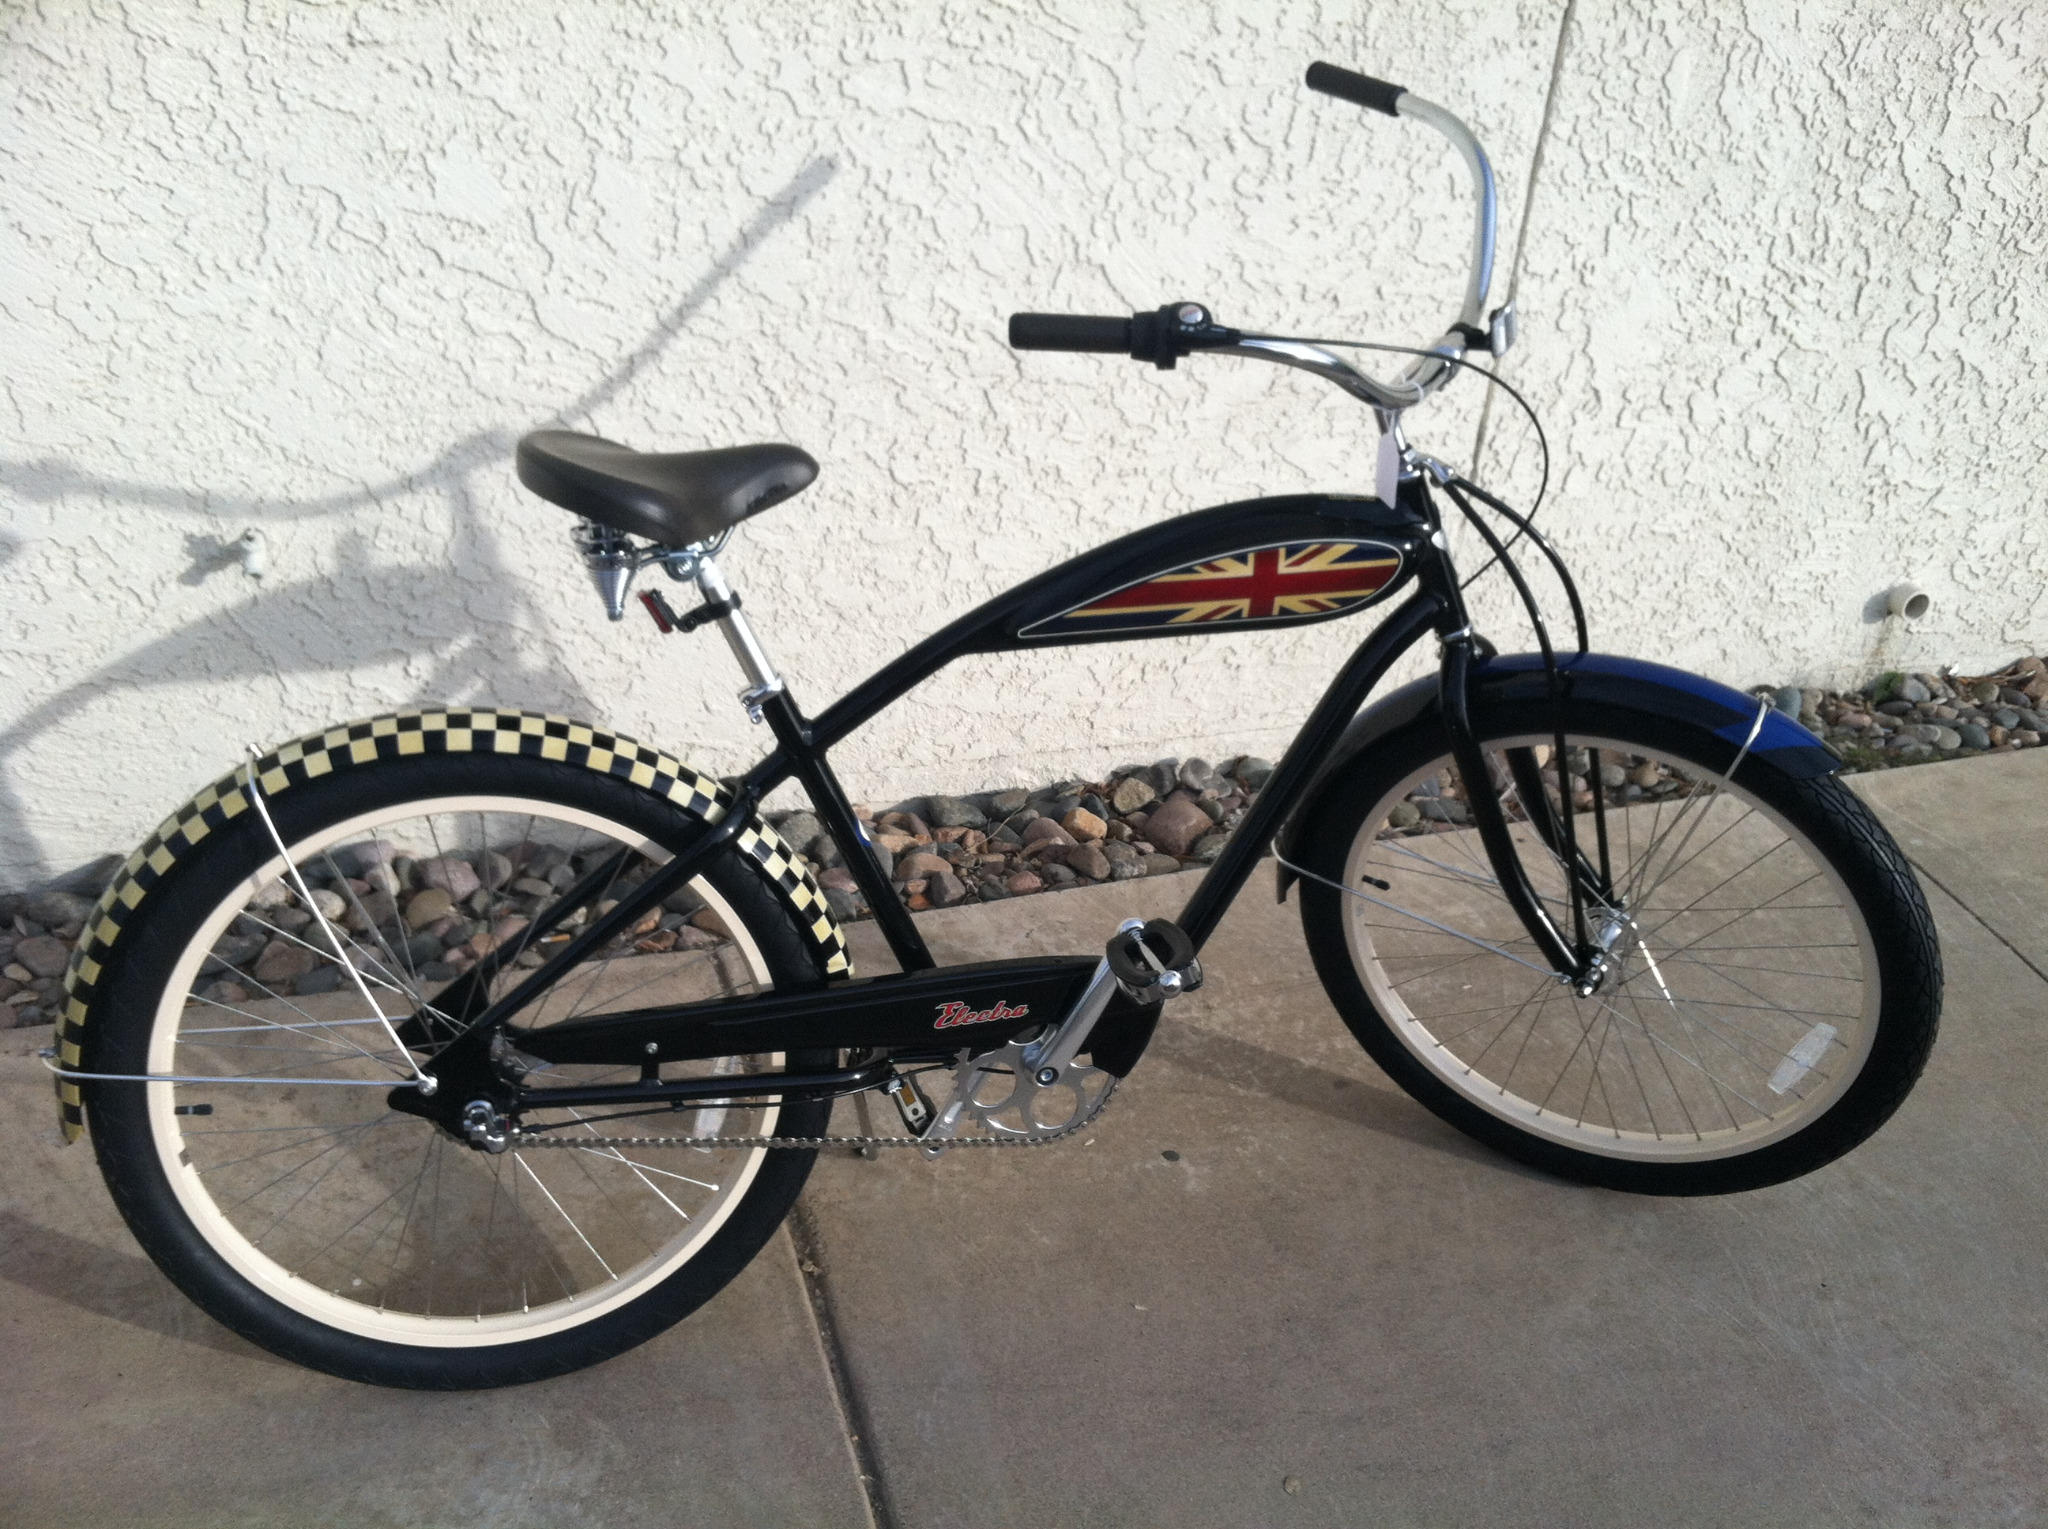 """Thanks 4 the support! MT@LandisCyclery1 Bike of the Week! Electra Mod 3i. Cruisin' in style is a must with this ride! http://t.co/wpJrZK9S"""""""